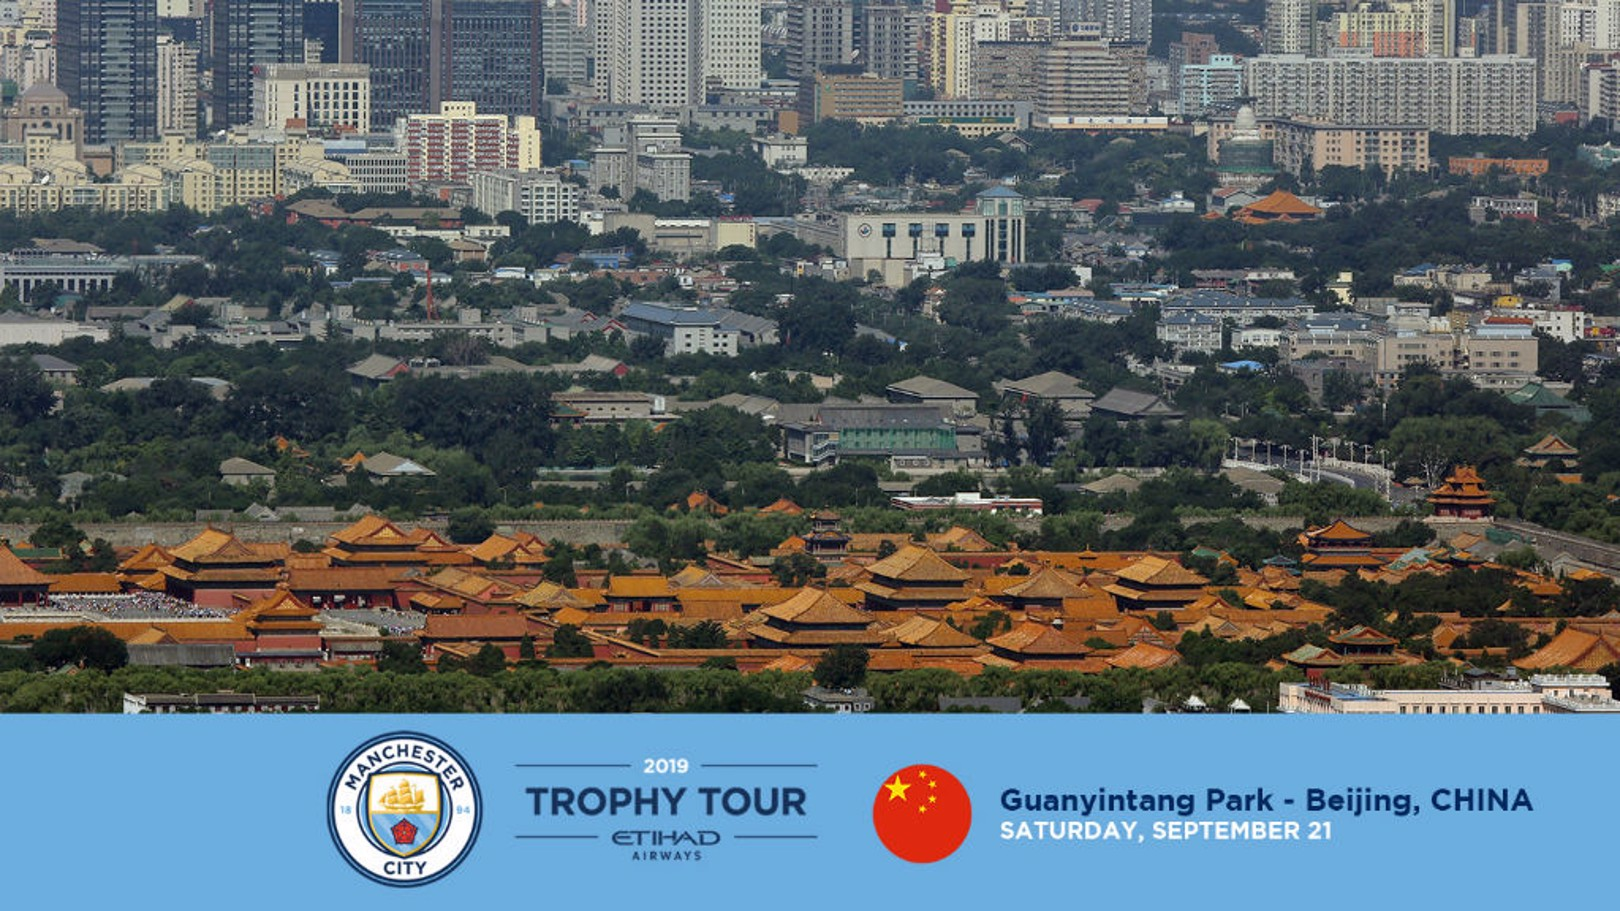 TROPHY TOUR: Our next stop is Beijing